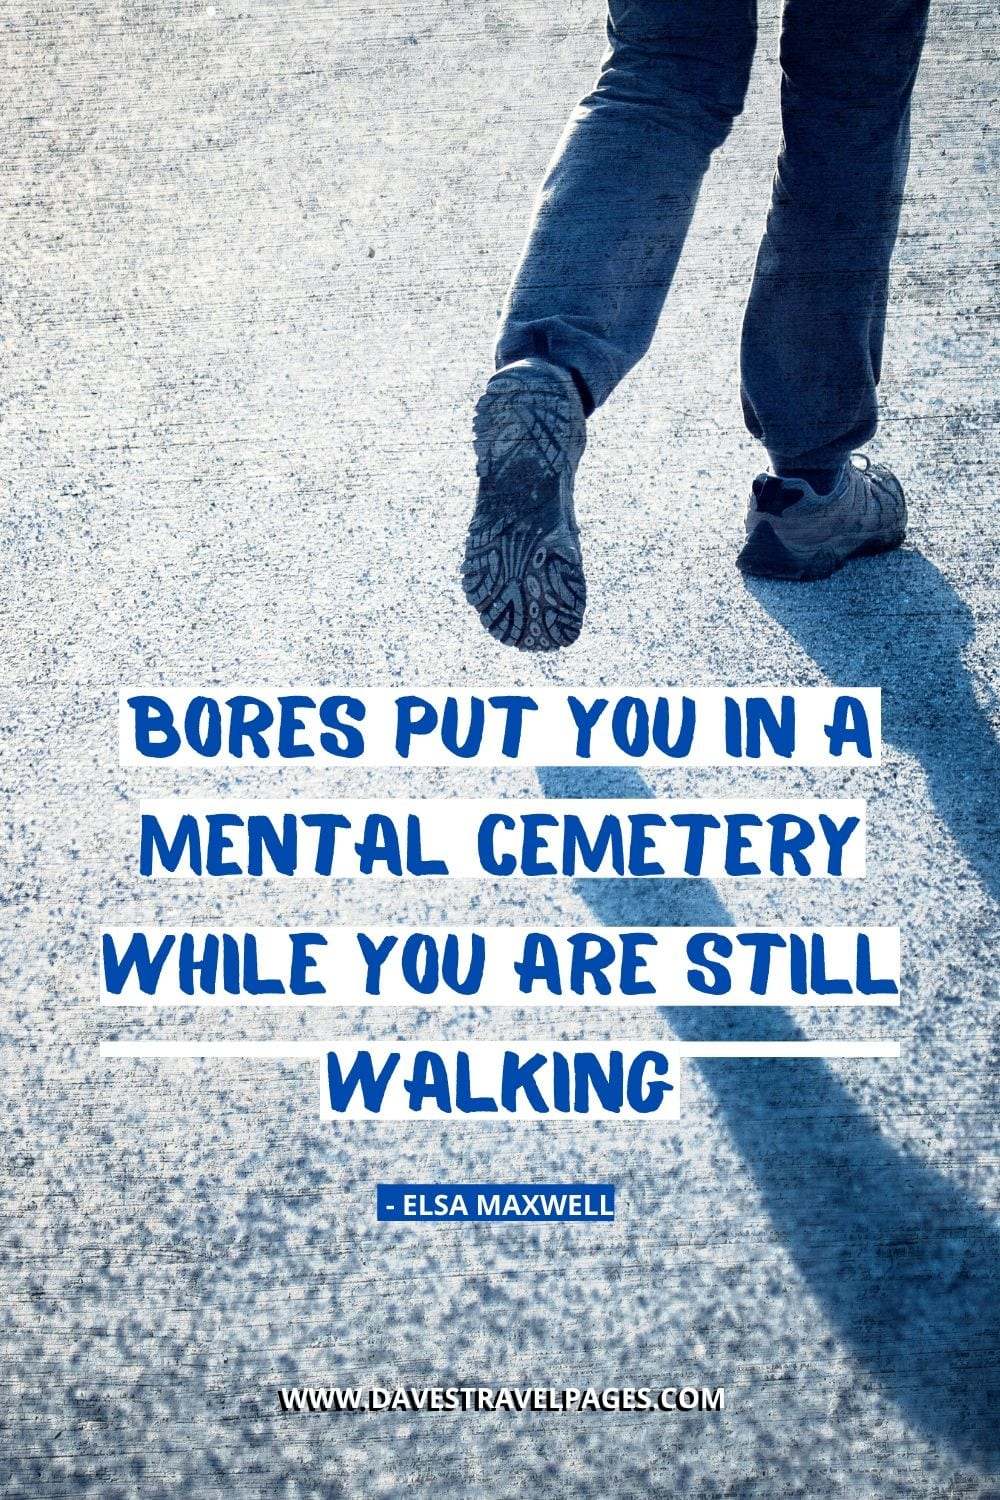 Bores put you in a mental cemetery while you are still walking - Elsa Maxwell